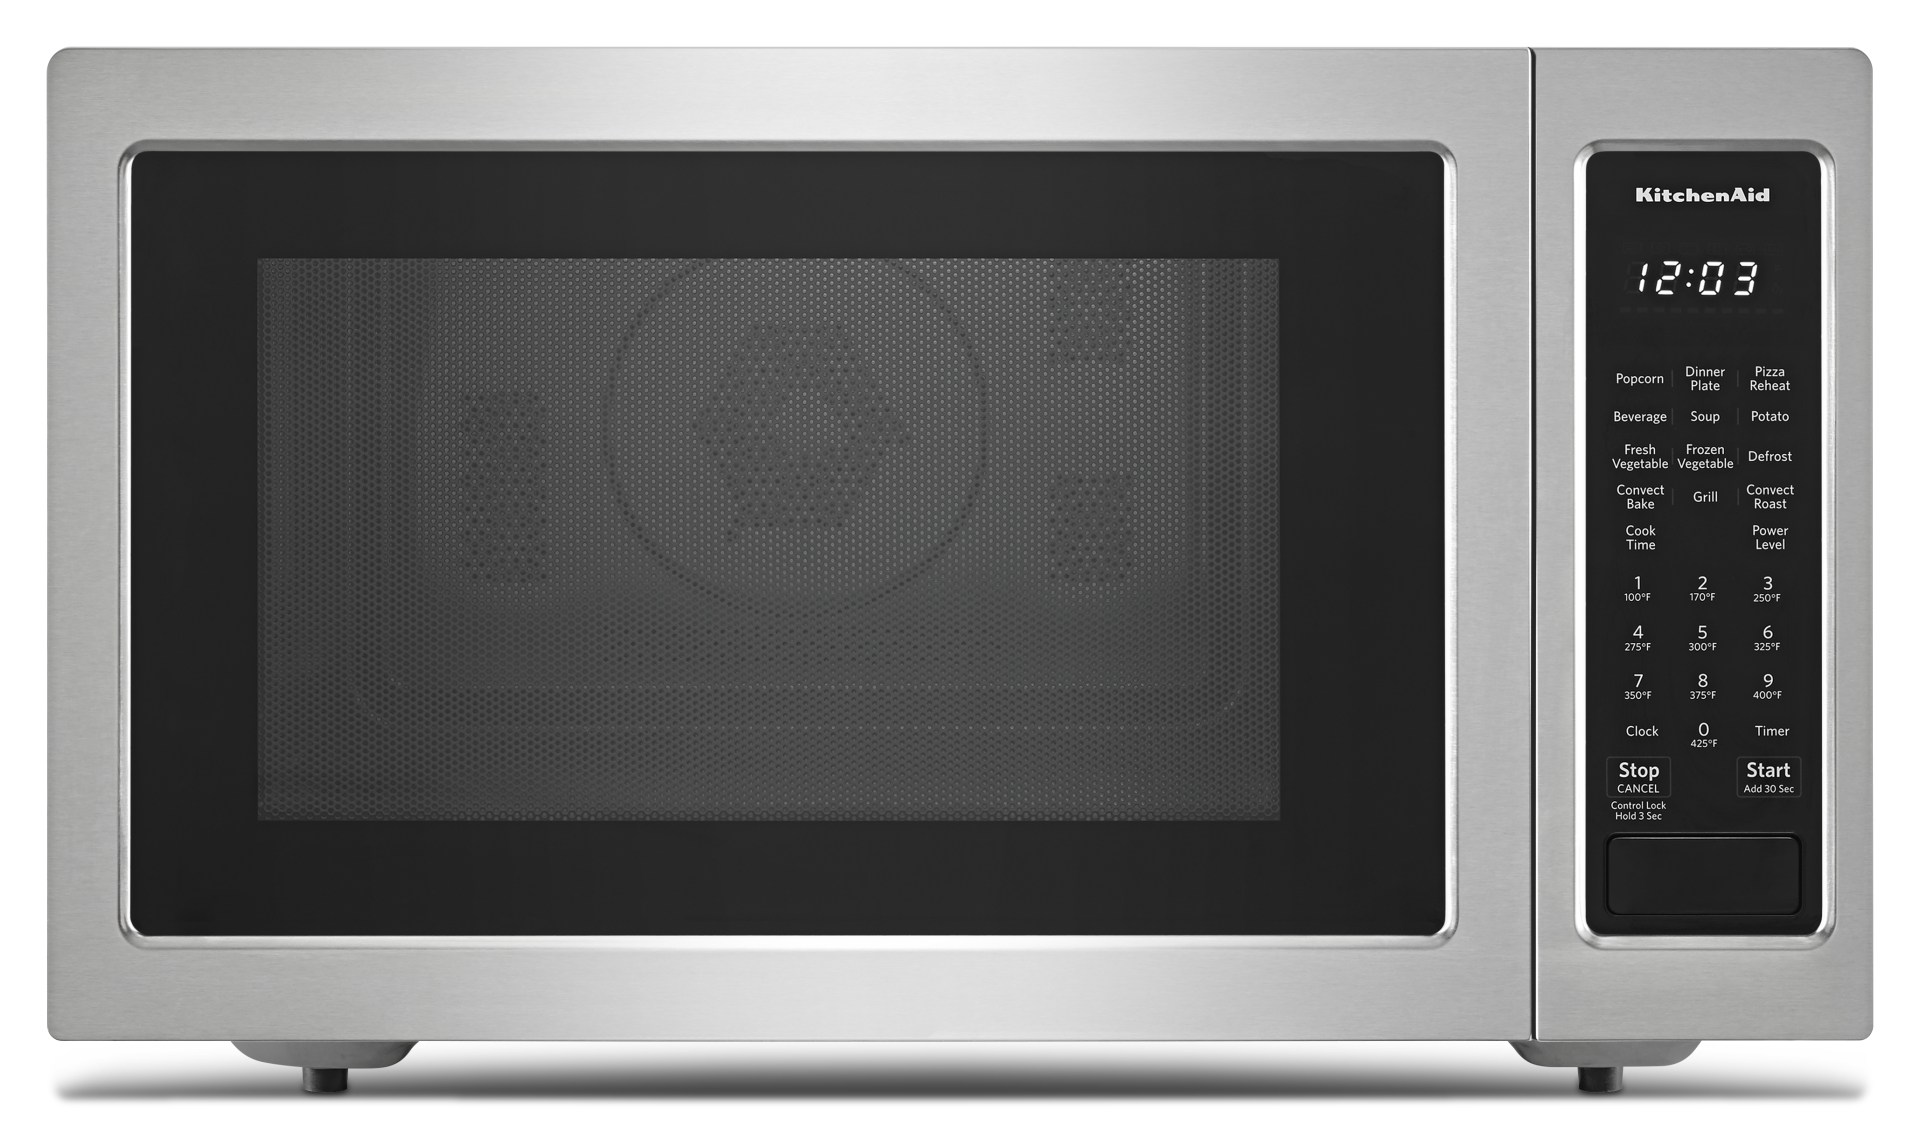 kmcc5015gss kitchenaid 22 1 5 cu ft countertop convection microwave oven with printshield finish and roast function stainless steel